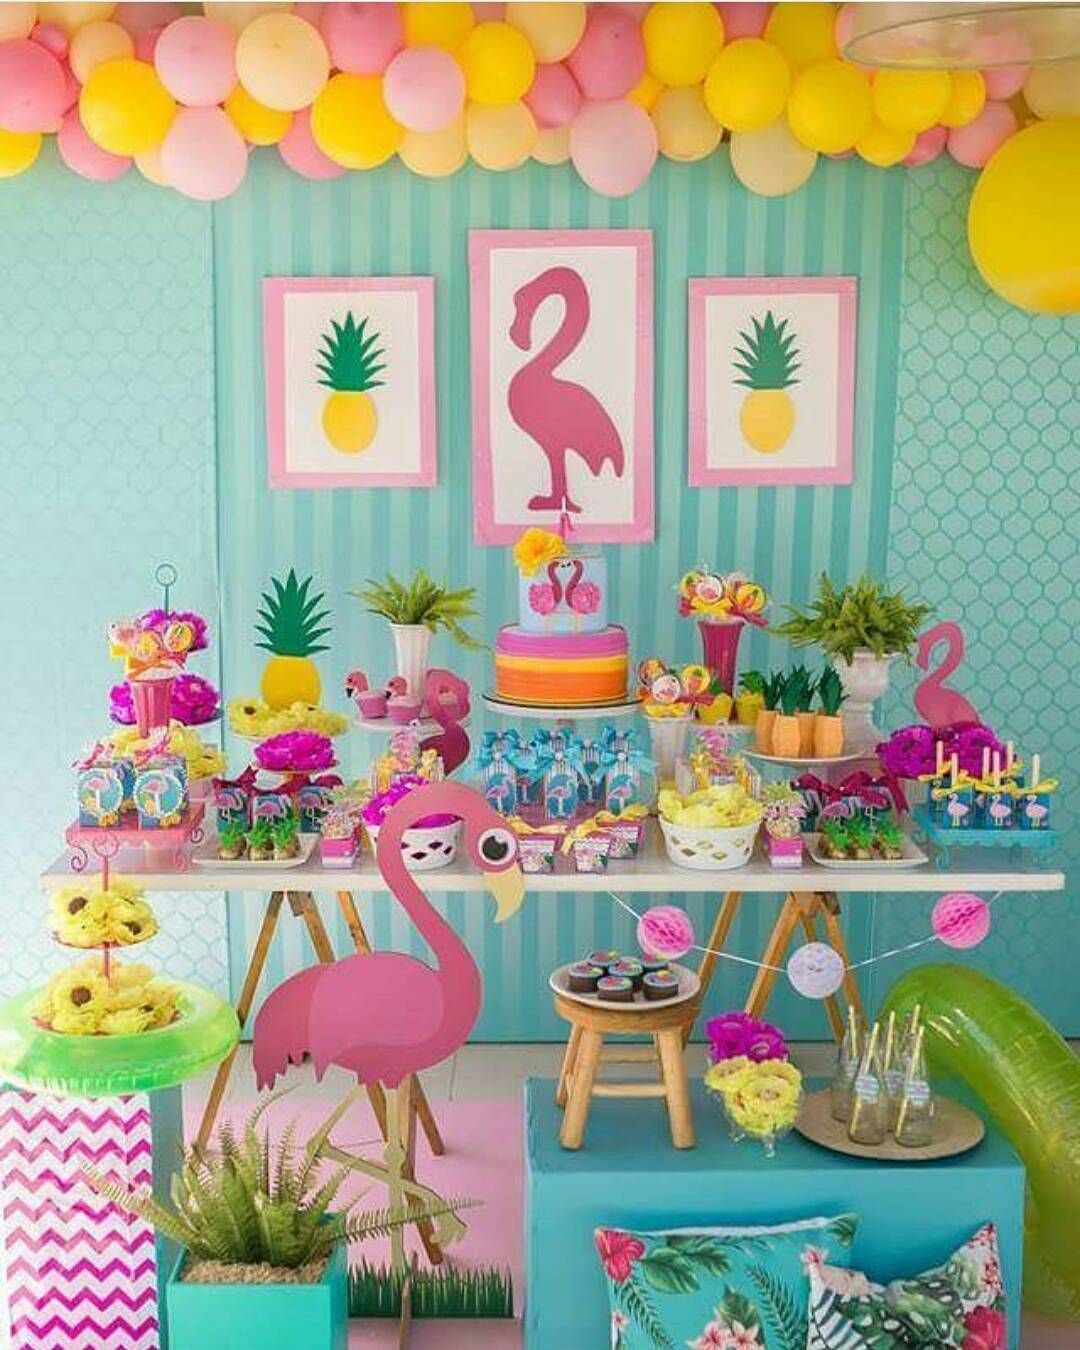 Decoraciones Para Un Cumpleaños De Niña Festa Do Flamingo Ideas Hawaiianadas Fiesta De